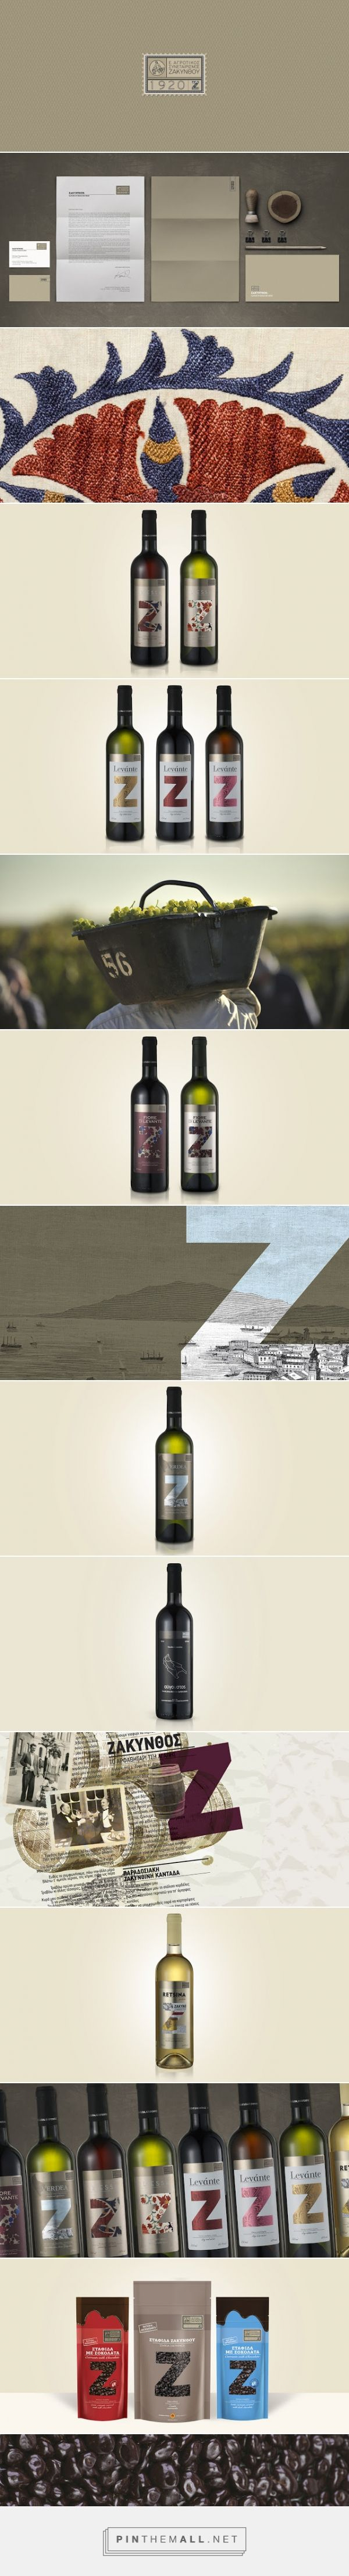 Agricultural Cooperatives Of Zakynthos #wine #packaging designed by Antonia Skaraki - http://www.packagingoftheworld.com/2015/07/utd-agricultural-cooperatives-of.html